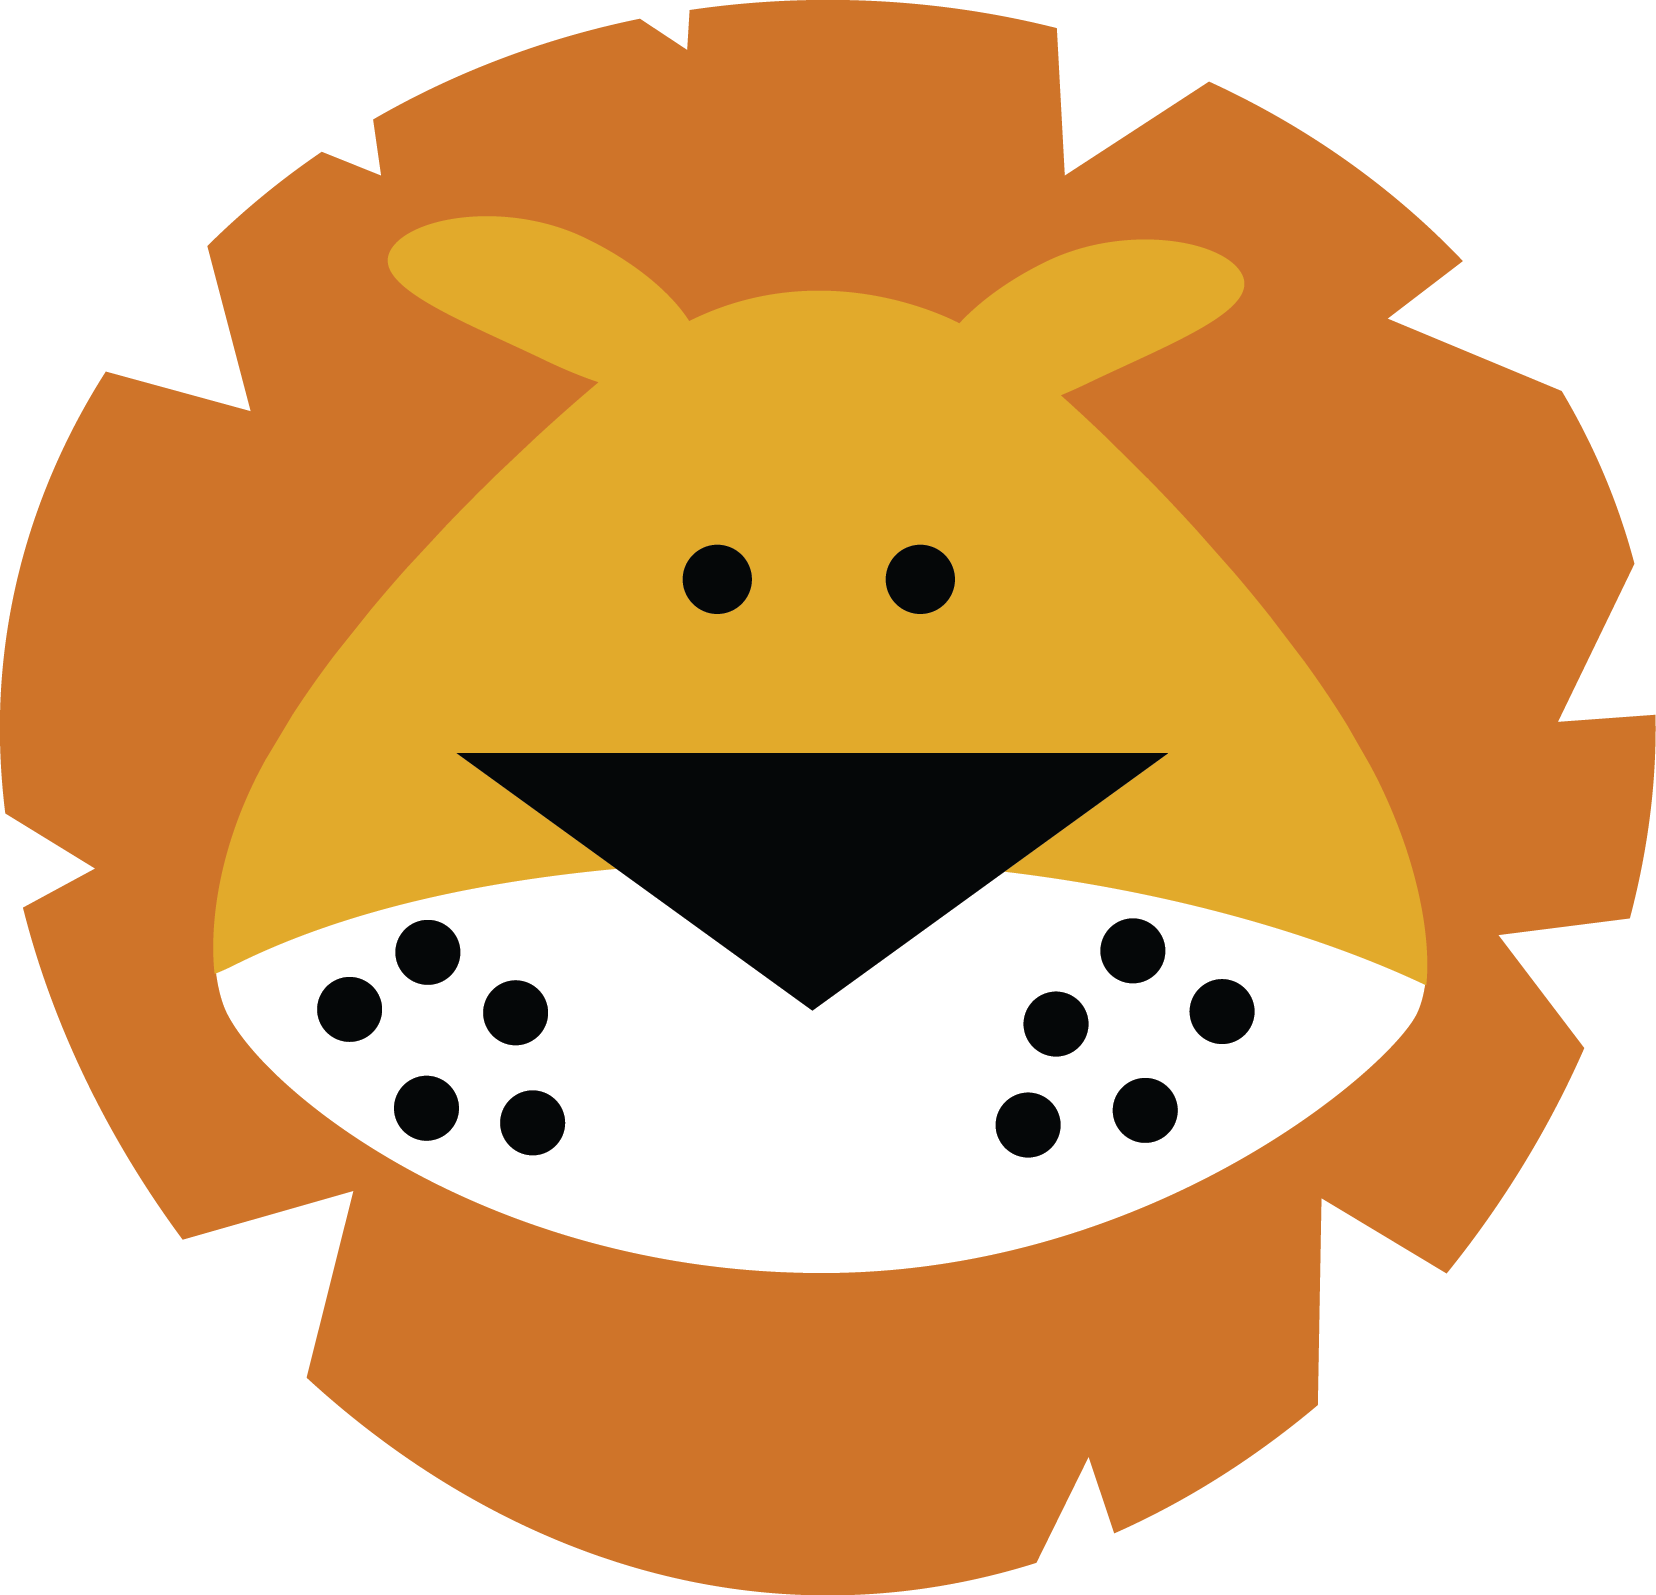 lion face miss kate cuttables scrapbook animals pinterest rh pinterest com cartoon lion face clip art lion face images clip art